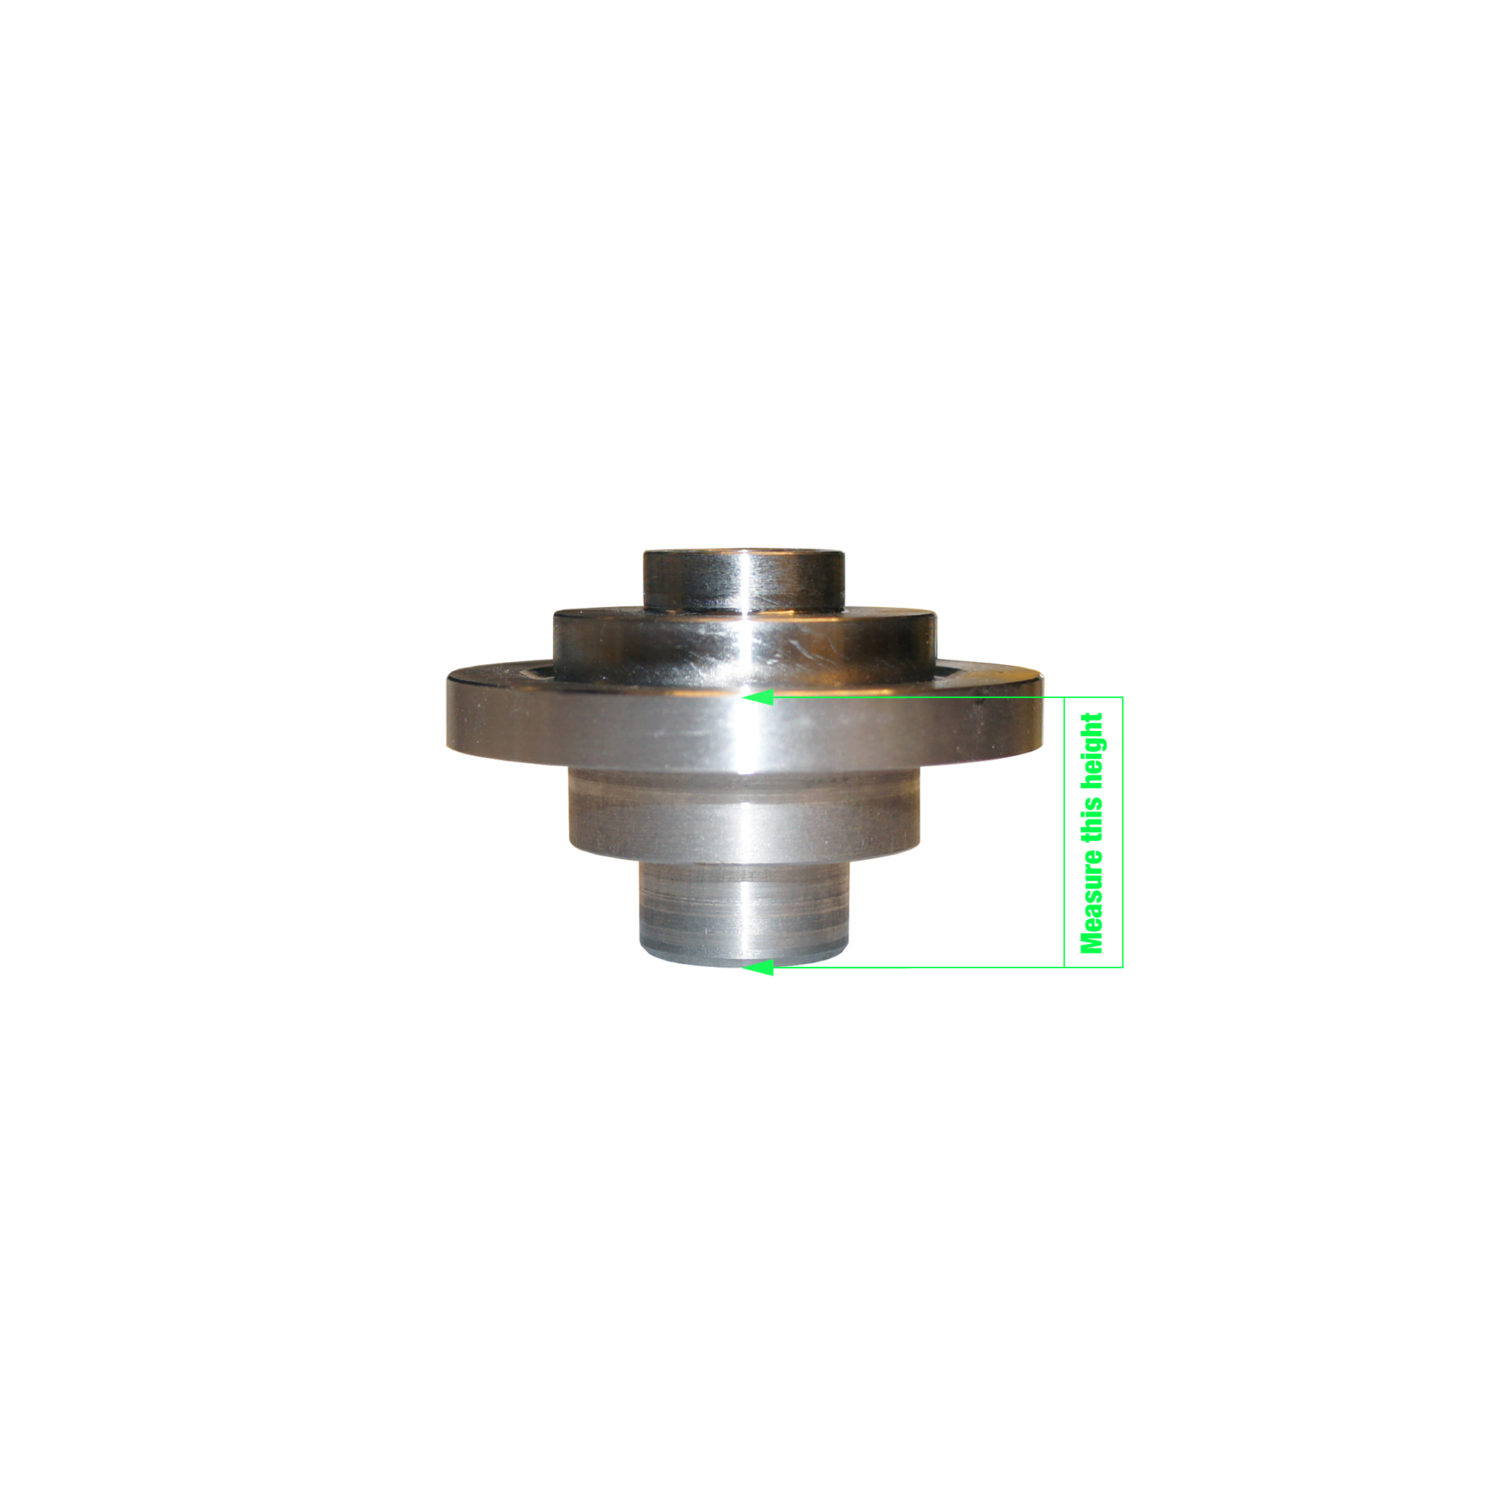 Flange (measure when replacing)